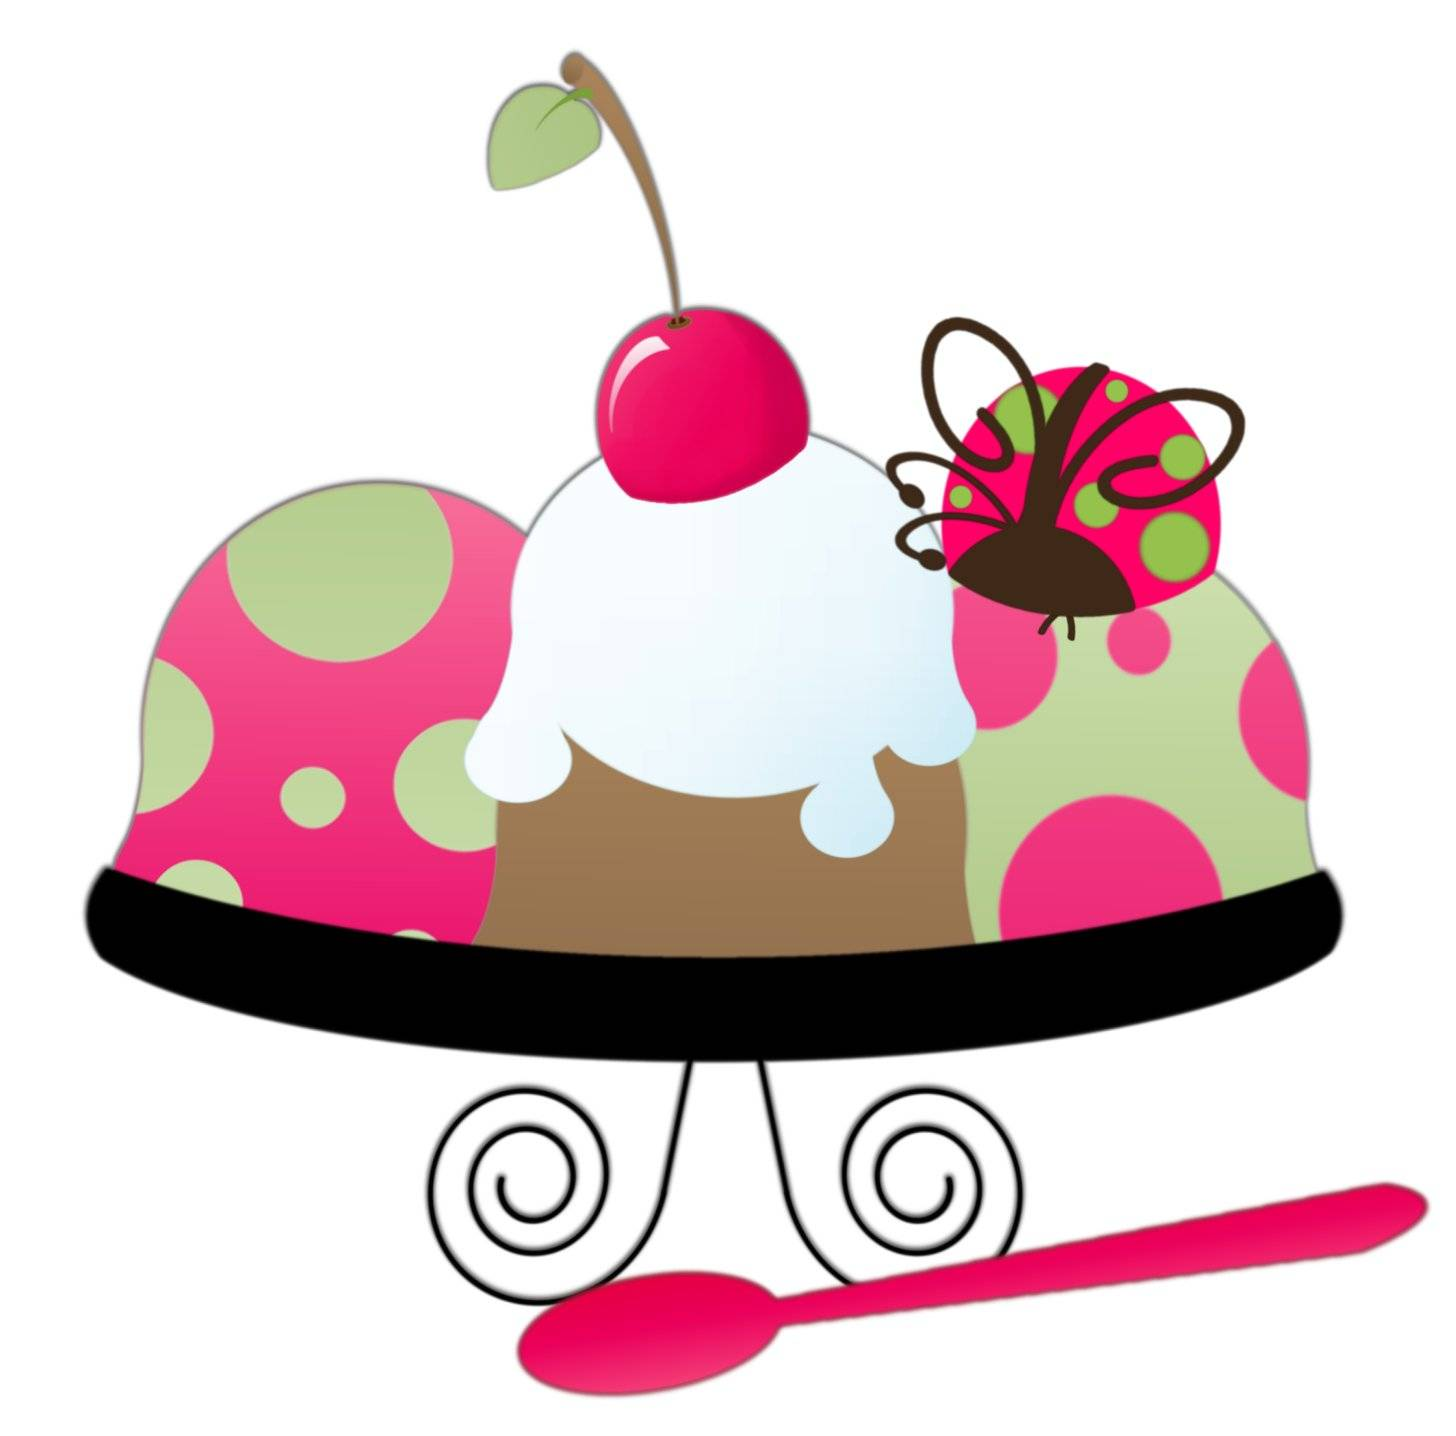 hight resolution of ice cream sundae clipart